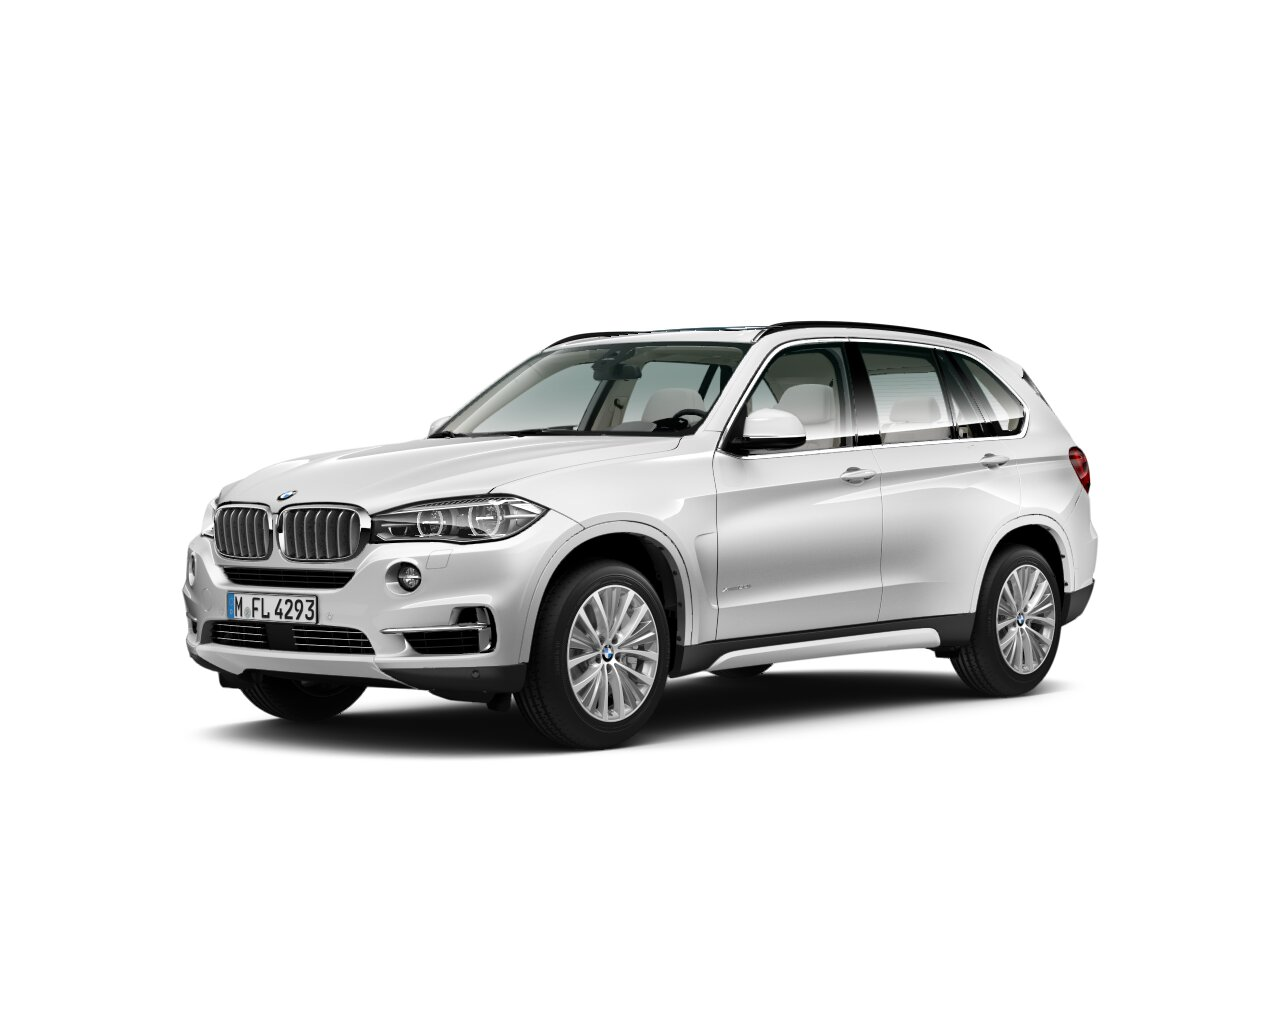 New Design Worlds Available For 2014 Bmw X5 Autoevolution